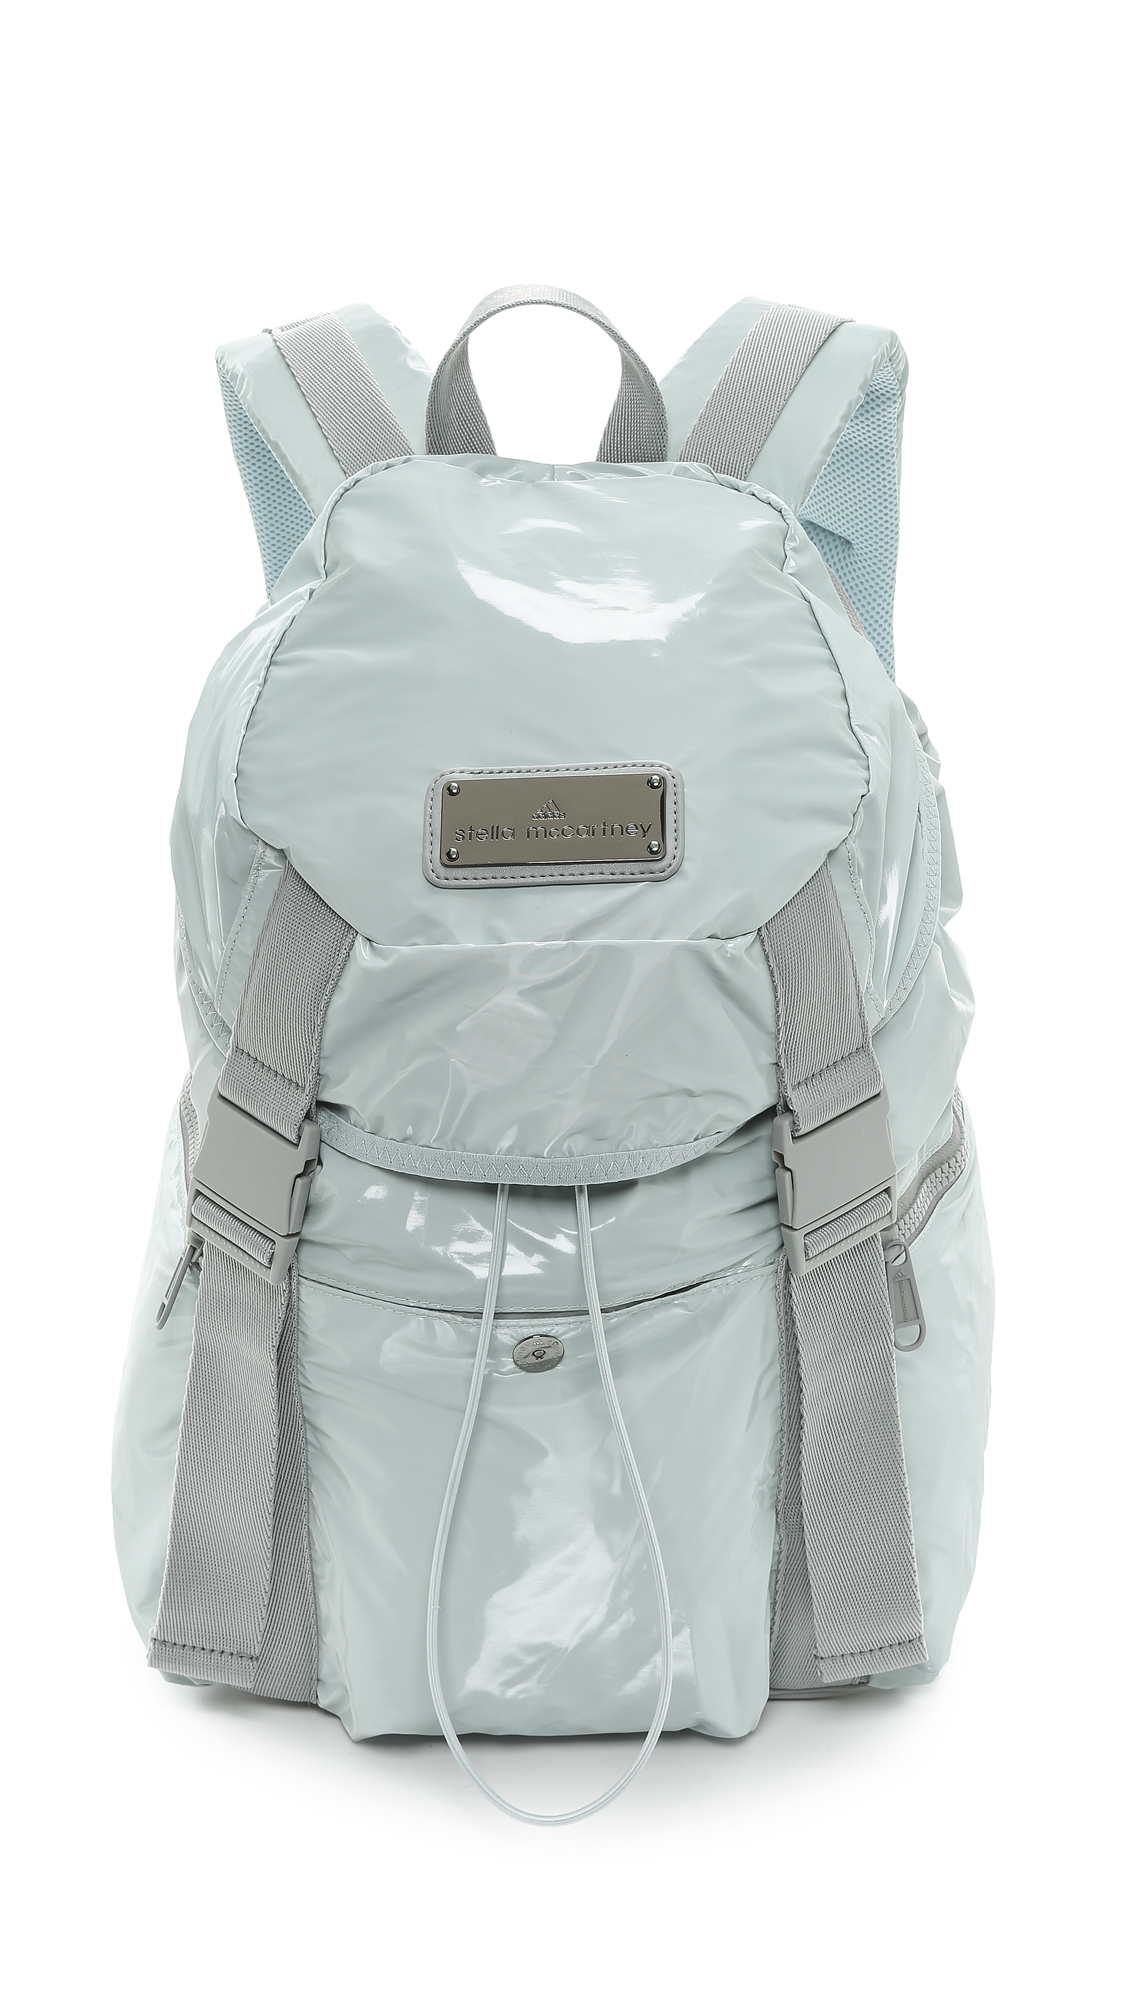 adidas by stella mccartney weekender backpack eggshell in blue lyst. Black Bedroom Furniture Sets. Home Design Ideas